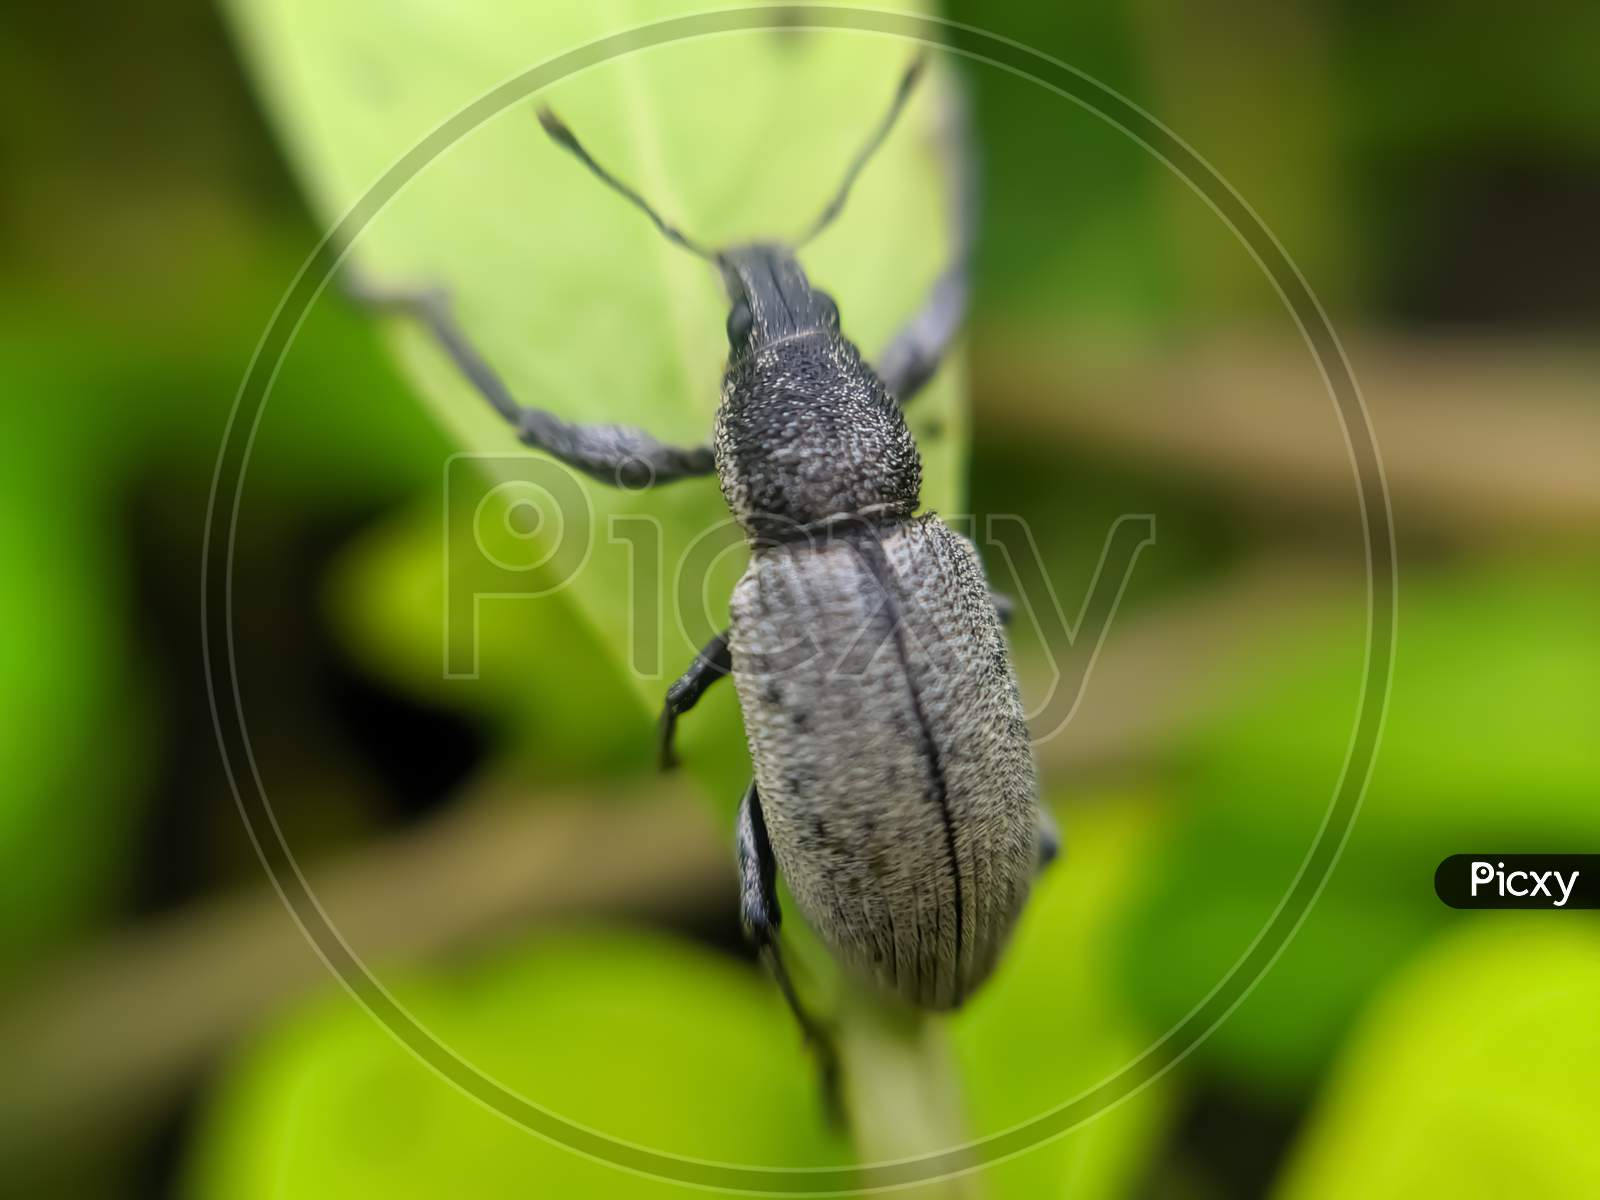 Curculionoidea insect on leaf garden curculionoidea green leaves plant to sit weevils